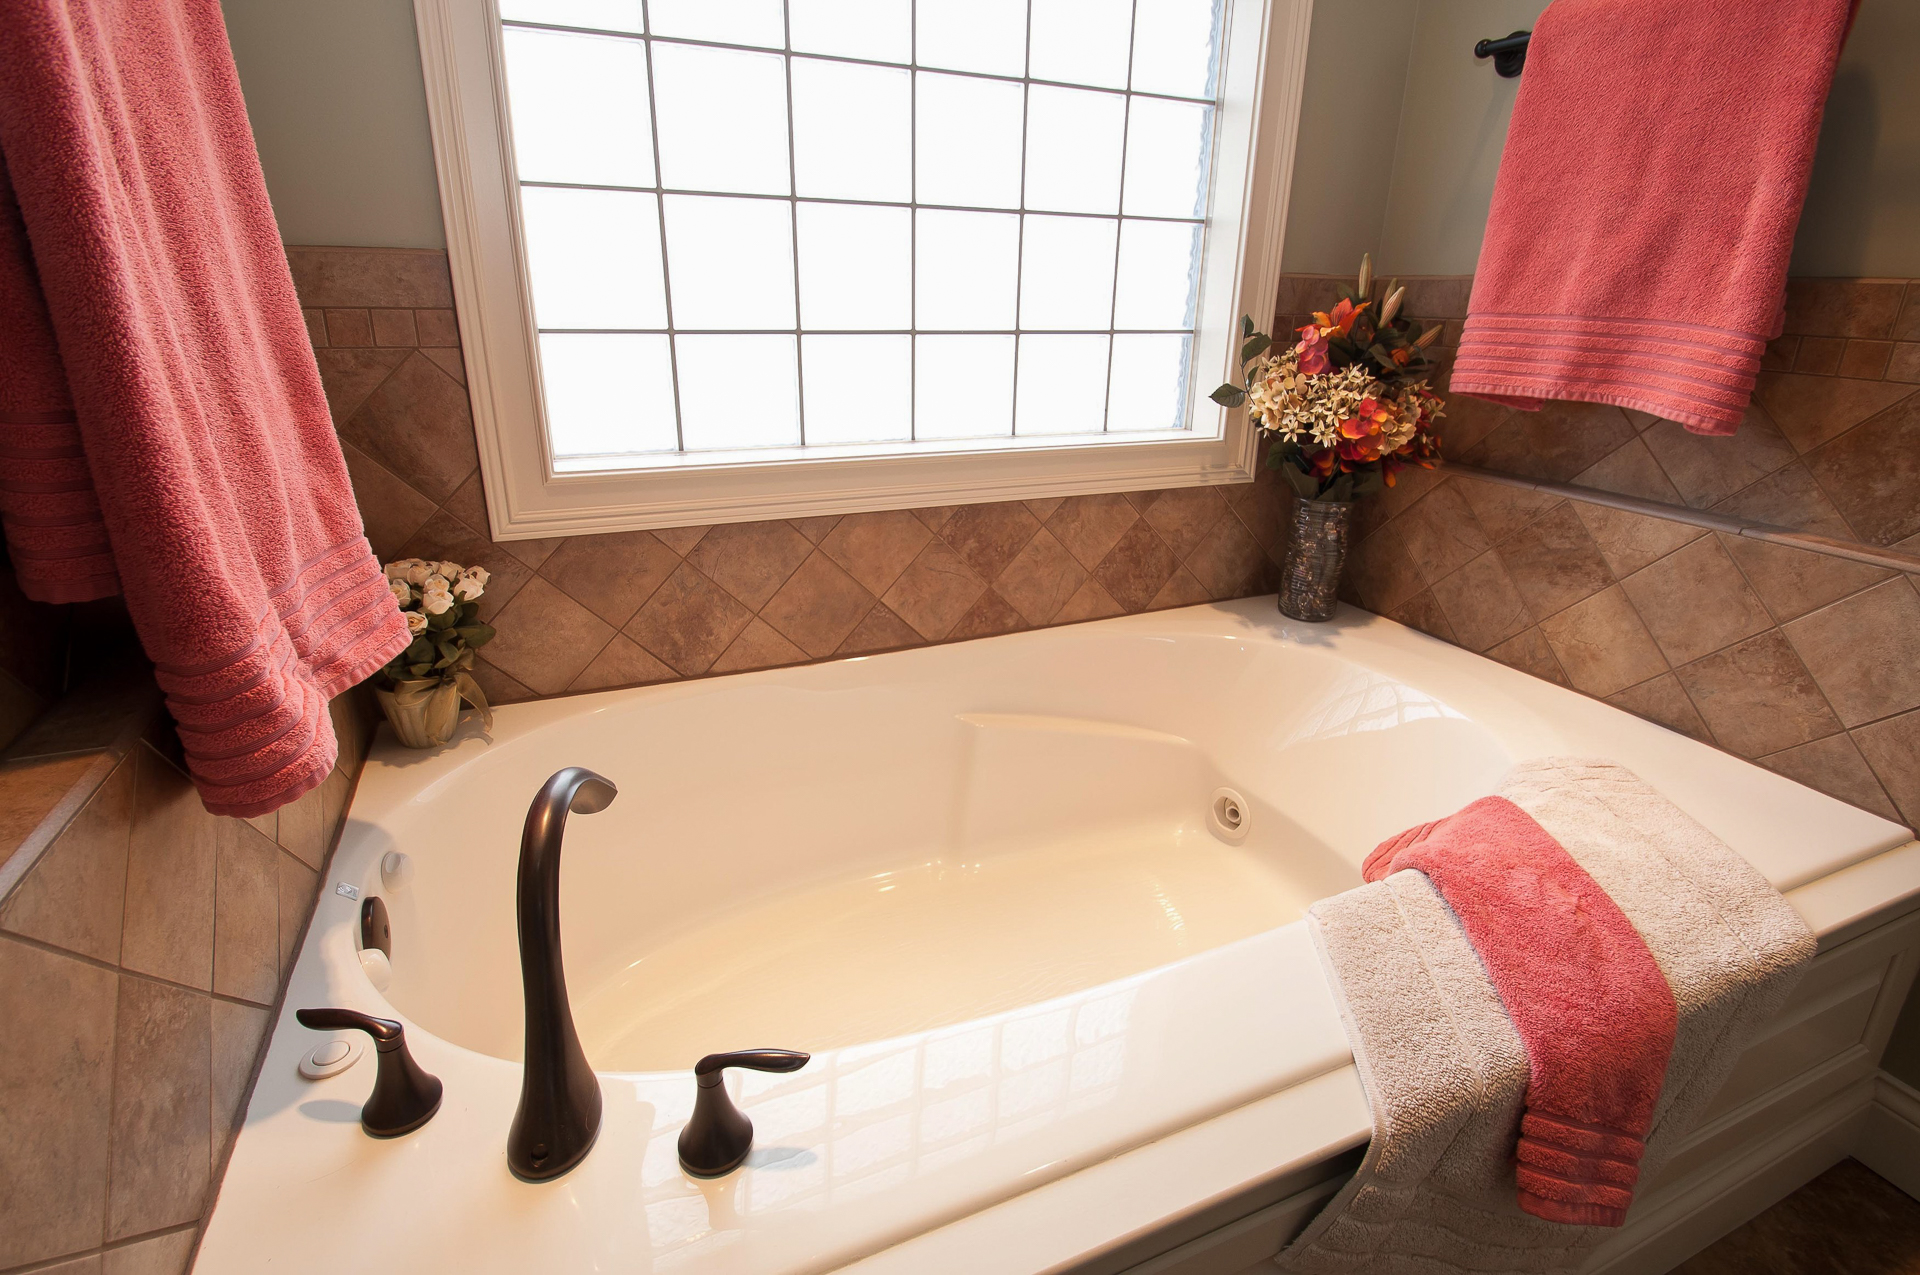 Soaking tub with jets and Eva oil rubbed bronze faucet, surrounded by ceramic tile